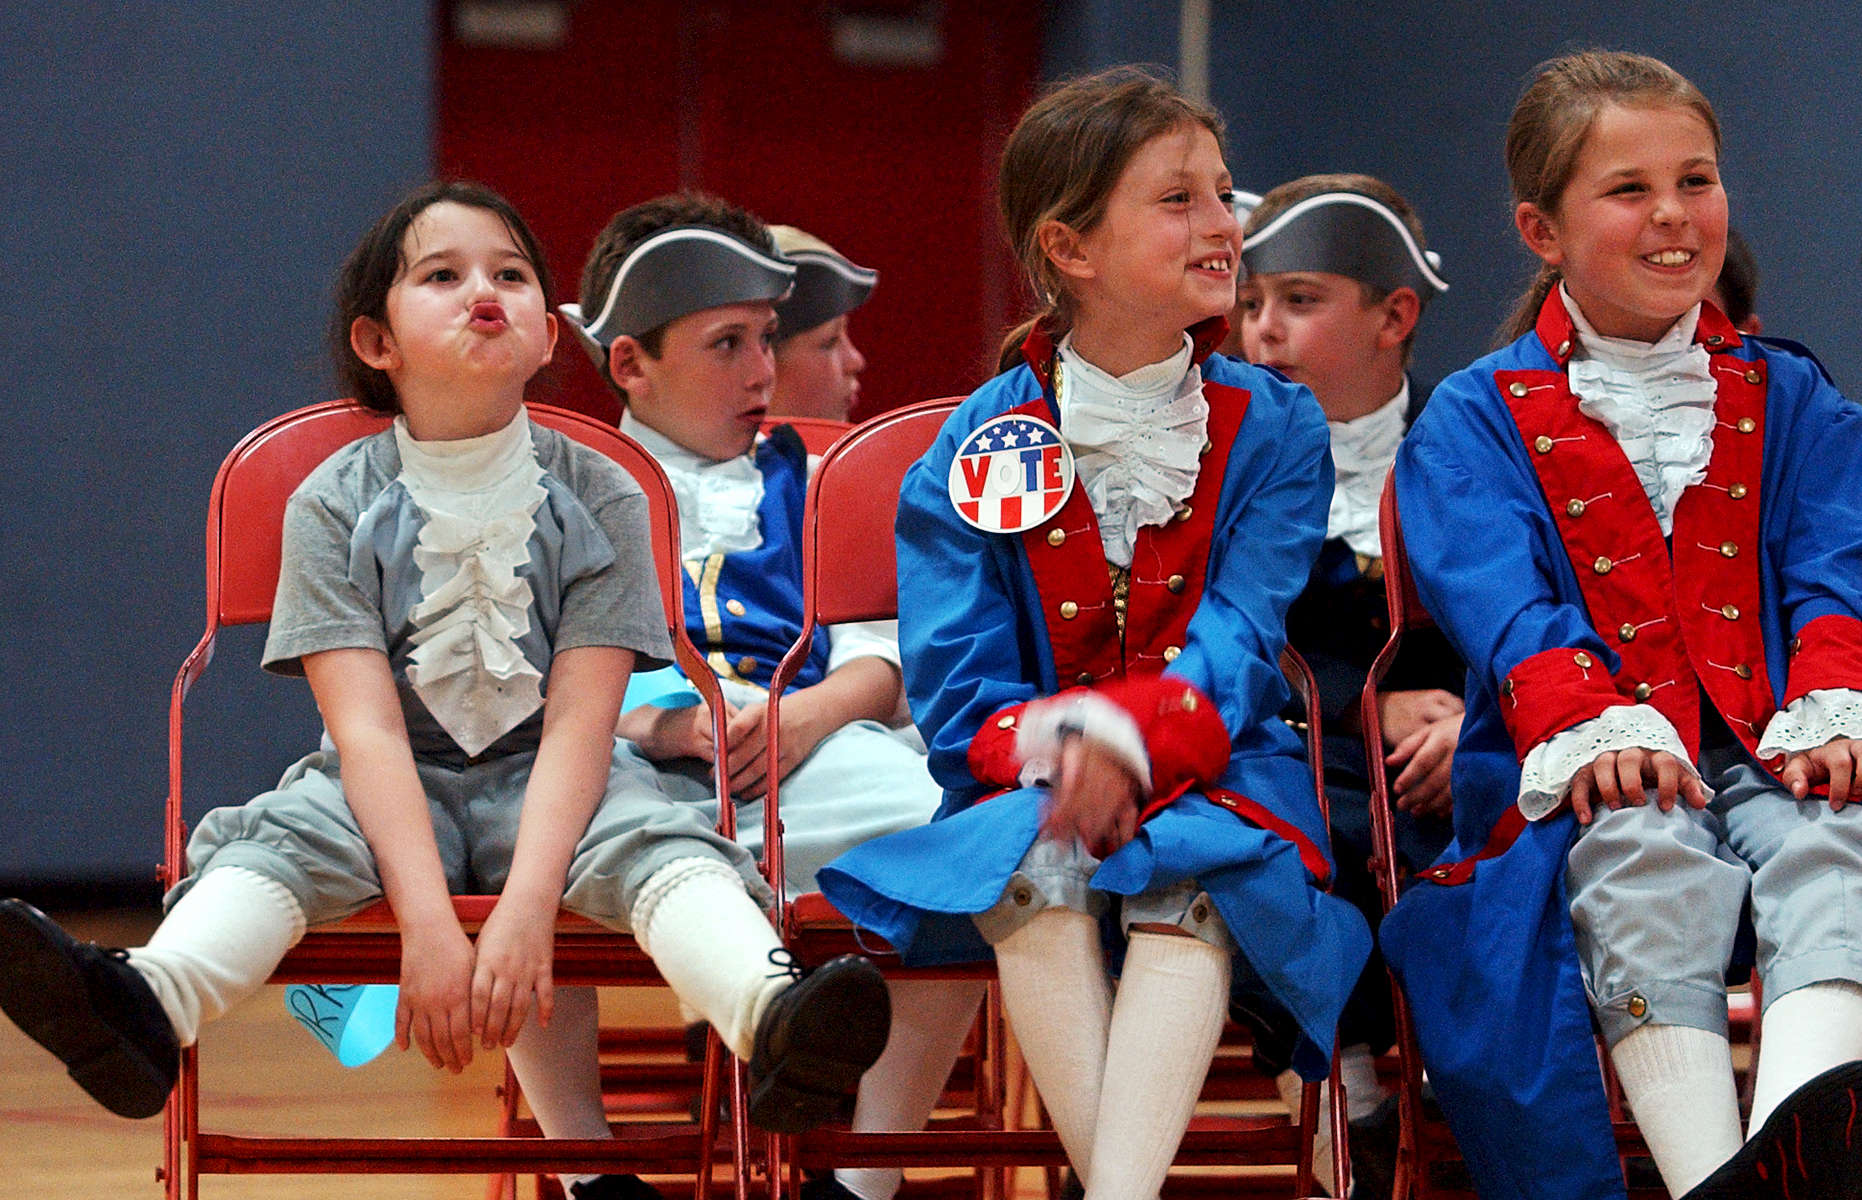 Martin Elementary School third grader Rachel Tinley (left) oohs along to {quote}Where do I Sign?{quote} in her class' American Revolution musical performance on Tuesday, June 13, 2006.